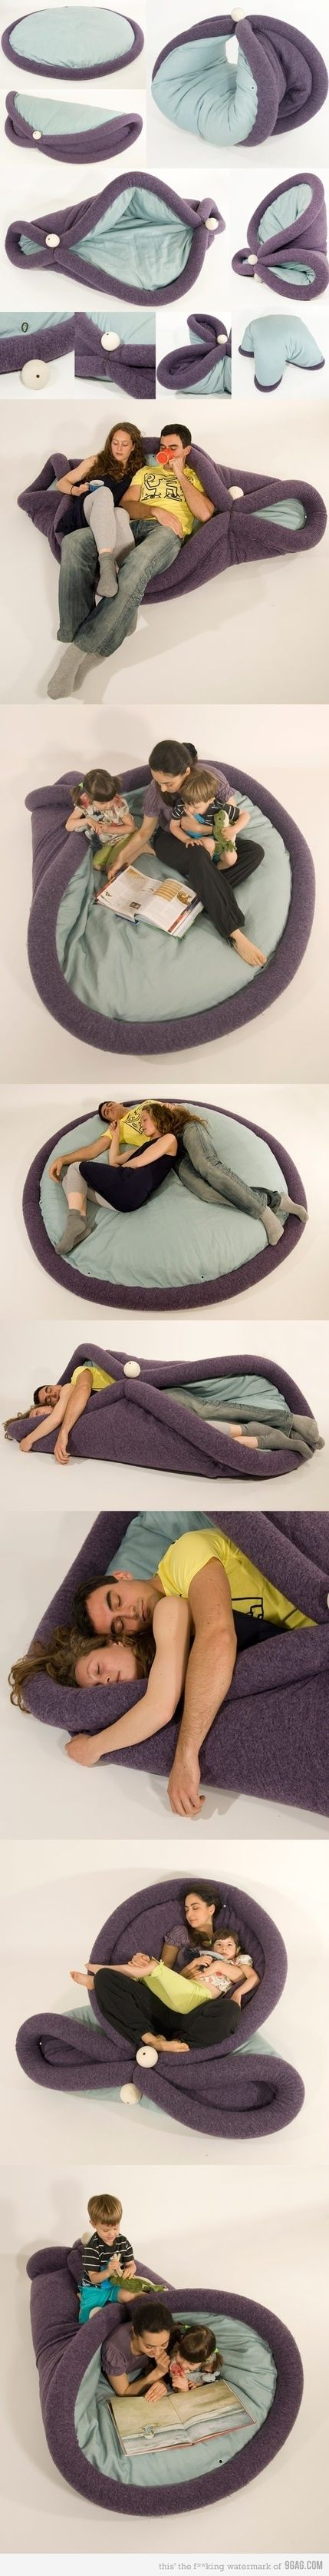 Looks Soooo comfy! I'd love one of these! :)Snuggles, Dogs Beds, Burritos, Ideas, Awesome, Beans Bags, Fun, Things, Pillows